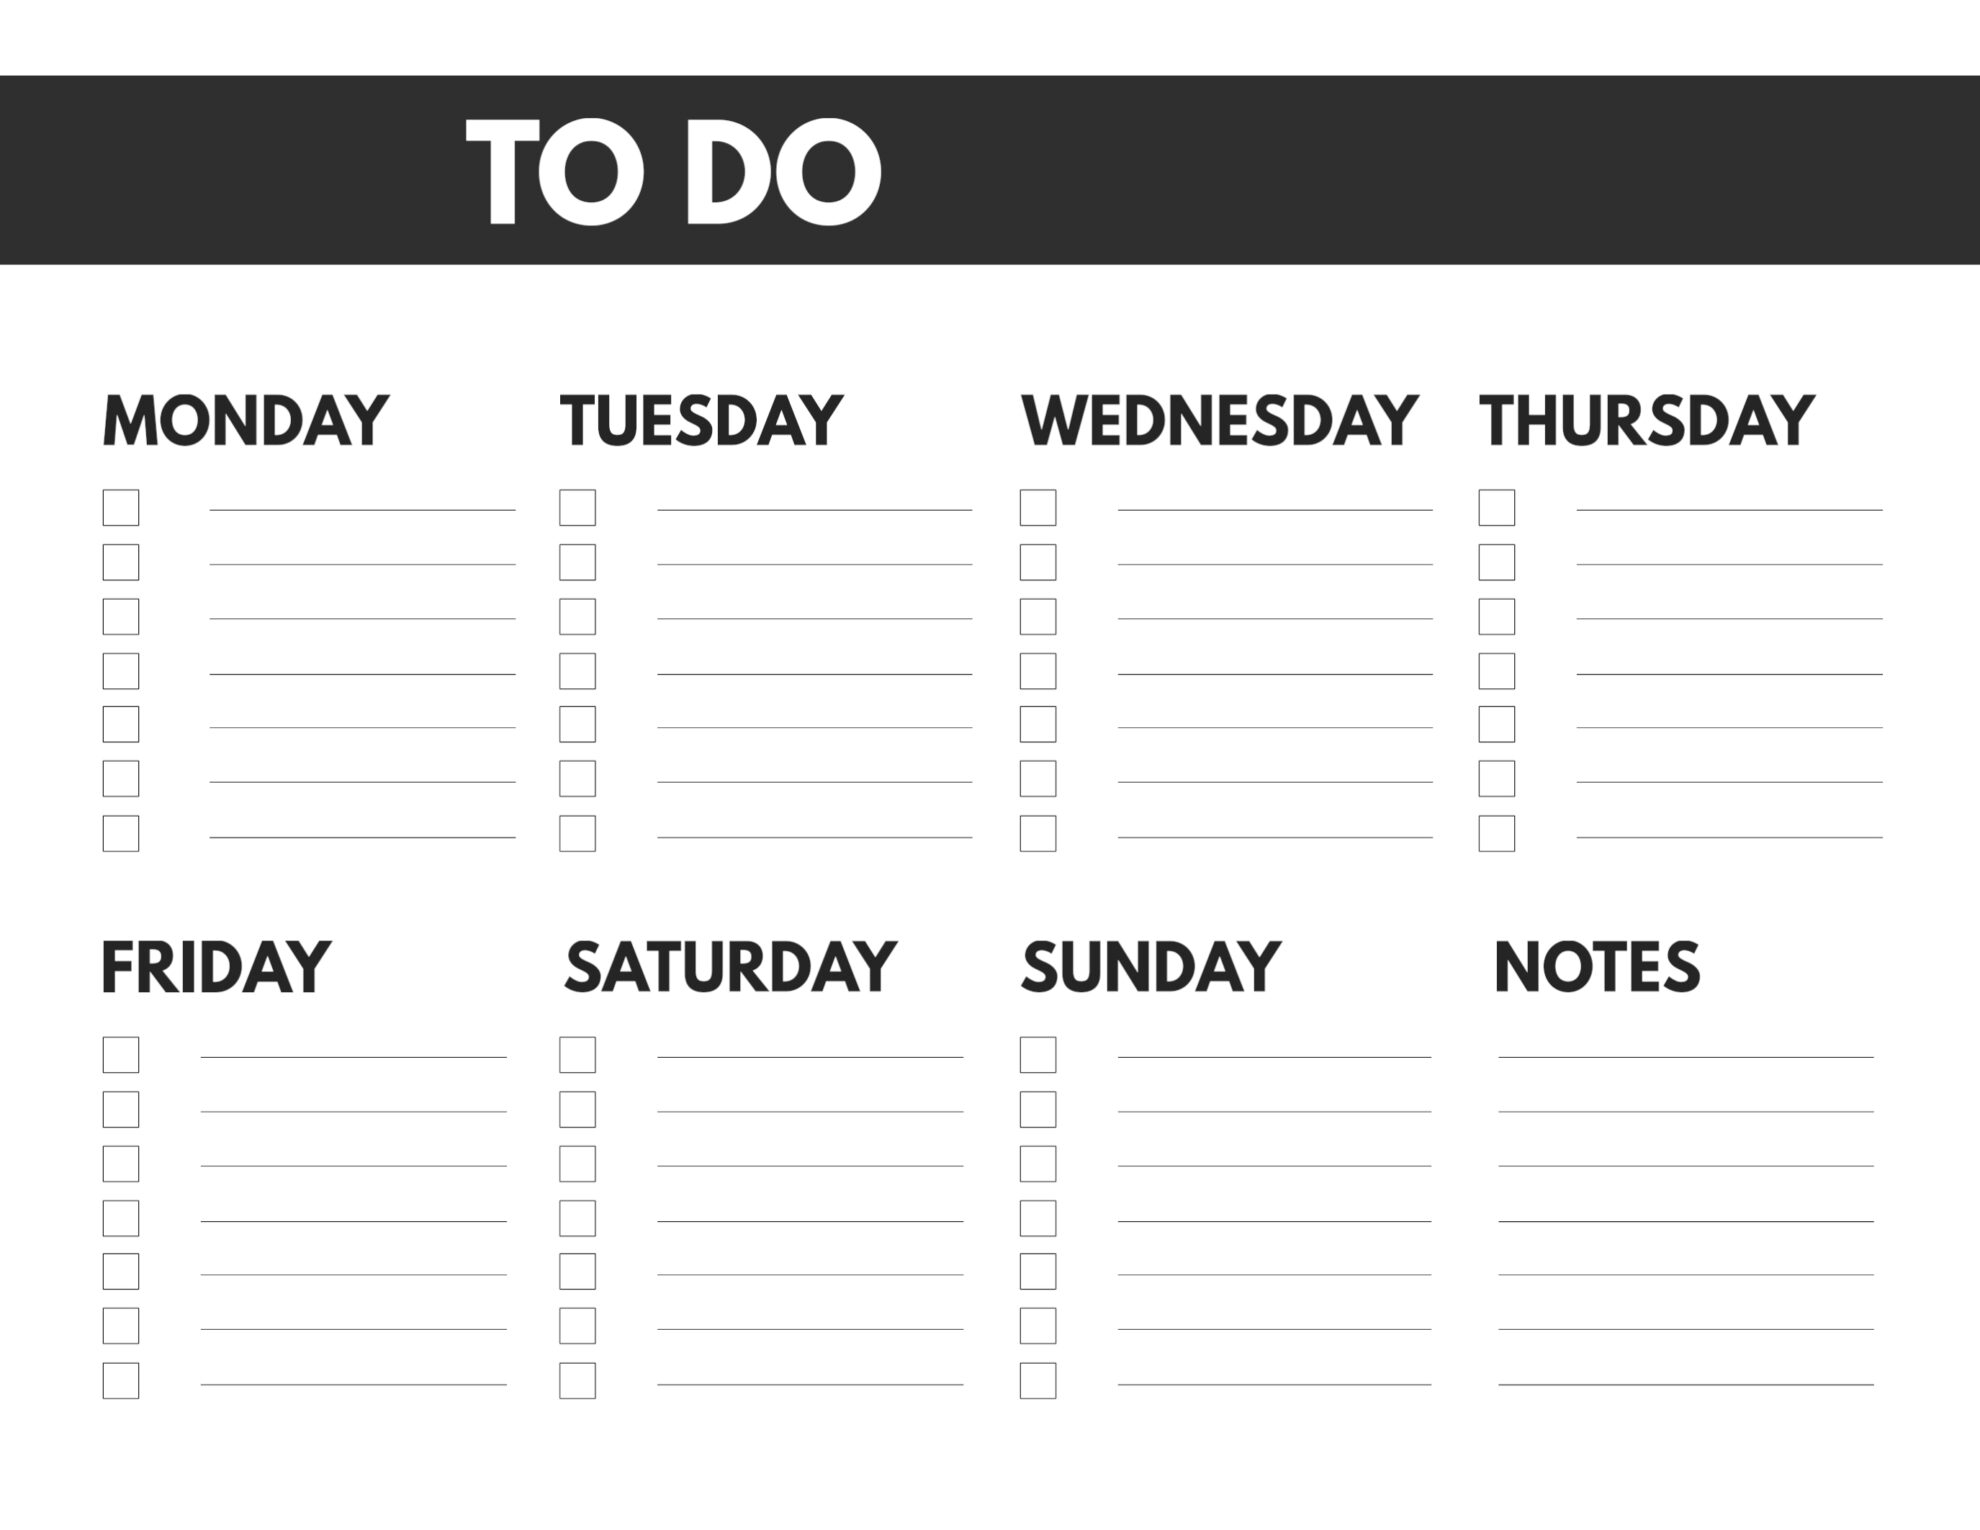 Free Printable Weekly To Do List - Paper Trail Design pertaining to Monday Through Friday Checklist Free Printable